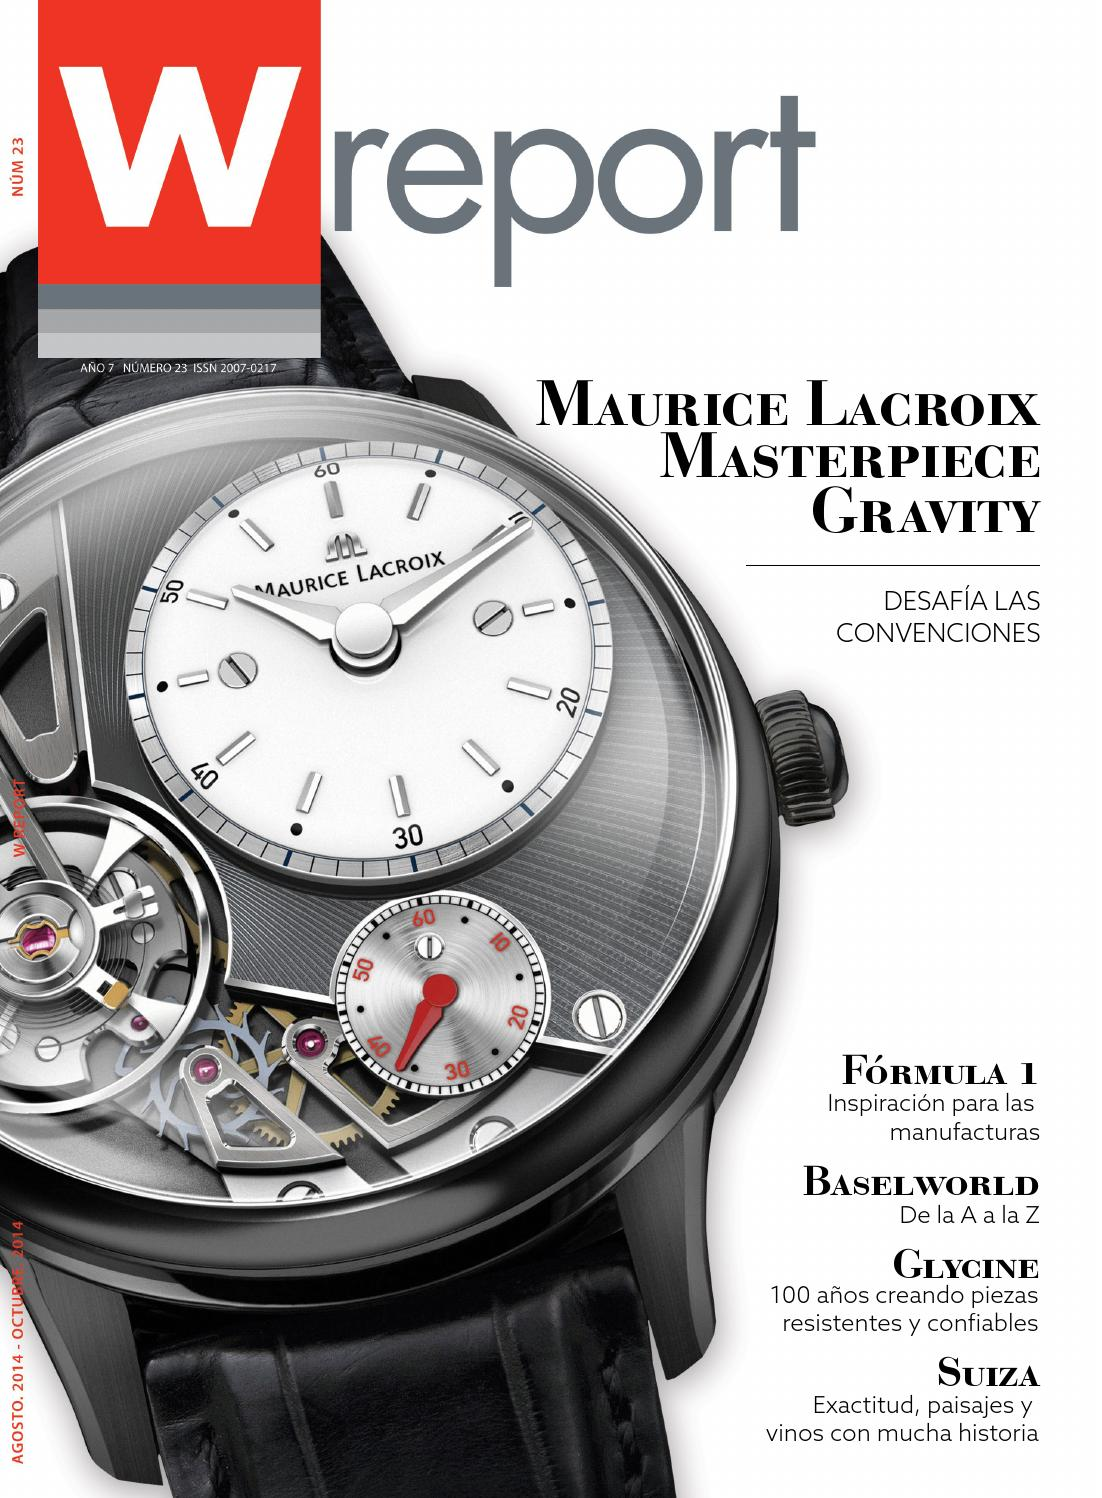 Wreport 23 by Swiss Time Group by WReport - issuu 9cad3e42a837